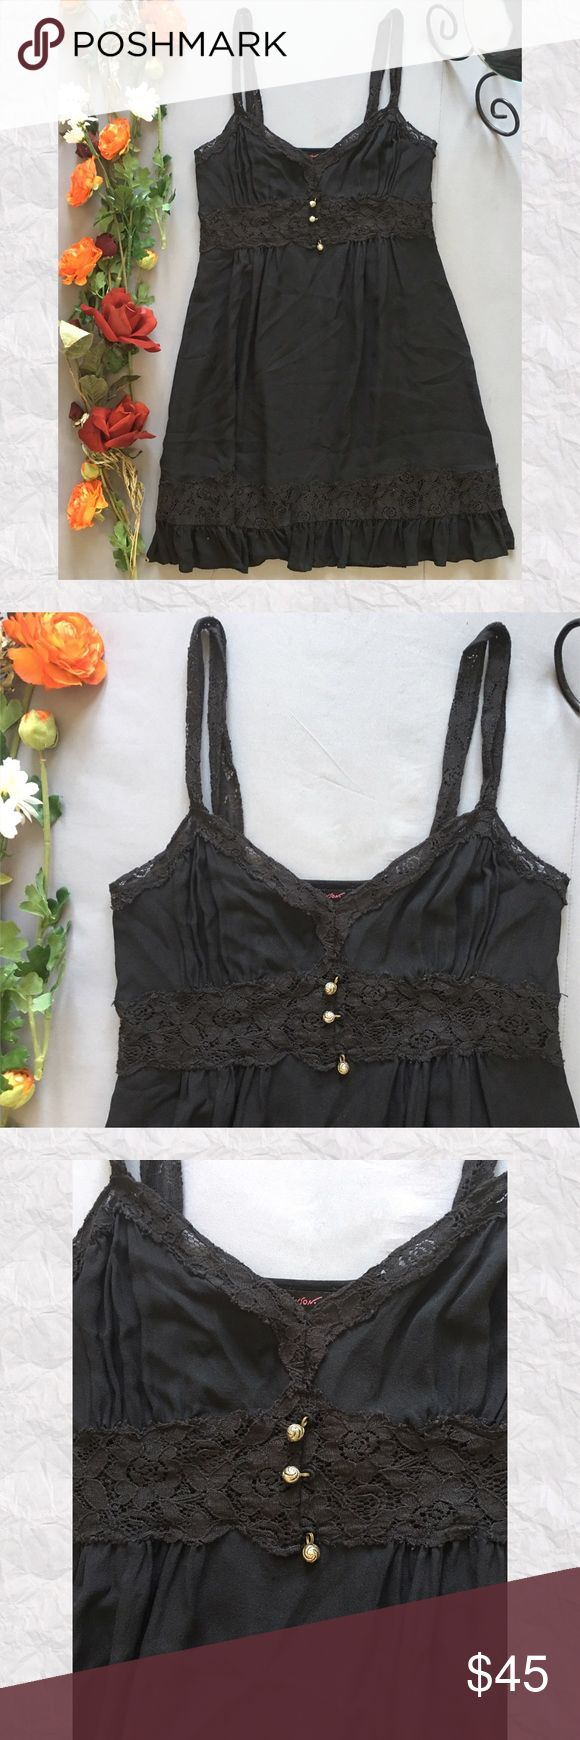 """Betsey Johnson Lace A-Line Mini Dress *SALE IS FOR DRESS ONLY! *Bought this for myself but ended up being a little too sexy for me. Has a nighty overall feeling to it. Lace portions are see through. *Condition: Very good. Some minor pilling. No holes, stains, or fading.  *Neckline: V-Neck *Sleeve Style: Lace Straps *Silhouette: A-Line *Closure: Side zip *Shell: No Fabric/Care tag *Lining: No *Measurements are approx & taken lying flat *Bust: 32"""" *Waist: 29"""" *Hip: 40"""" *Shoulder to Hem: 33.5""""…"""